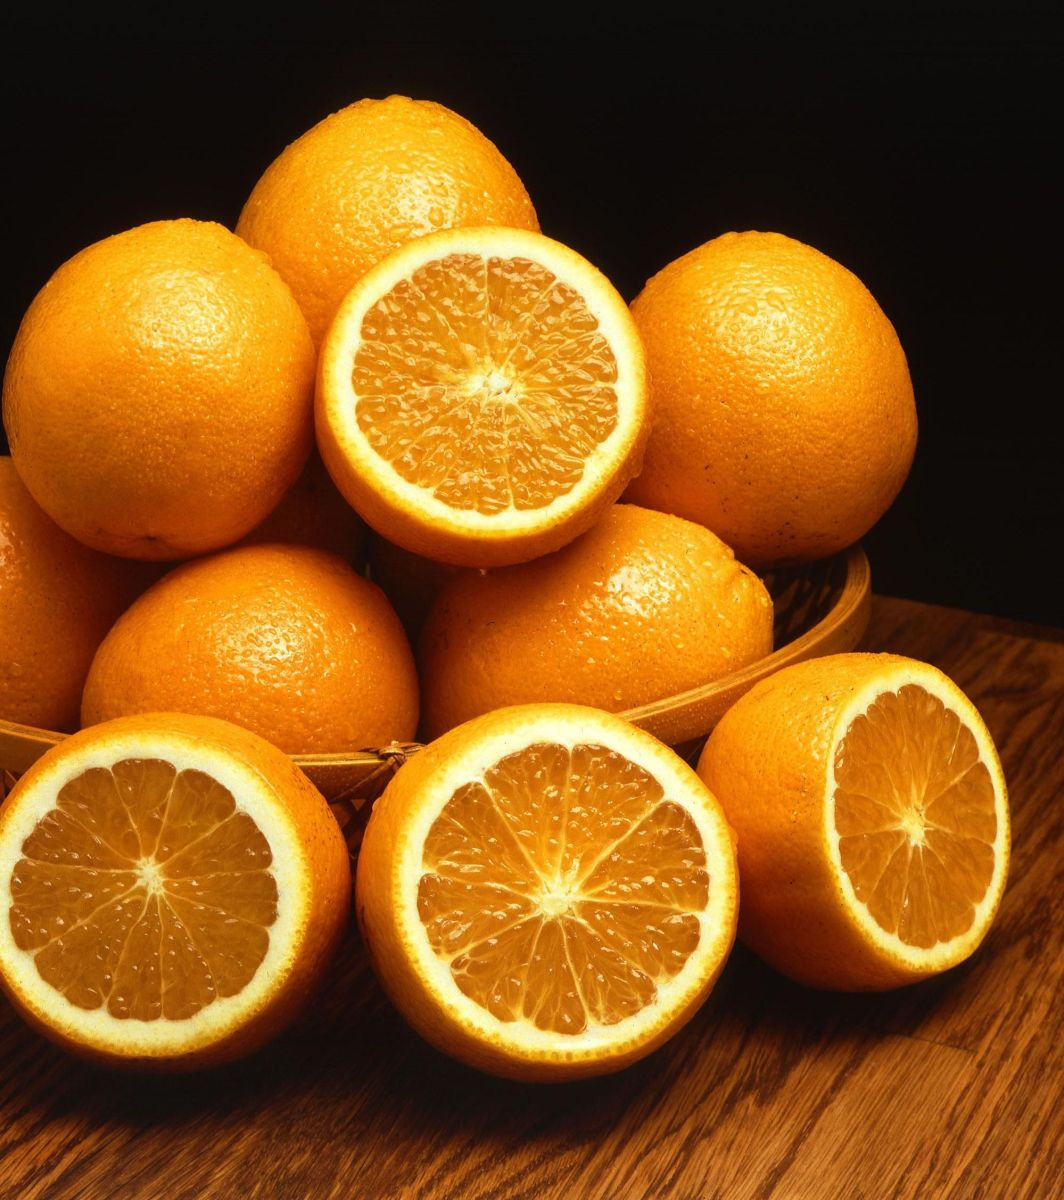 Oranges are an abundant source of Vitamin C.